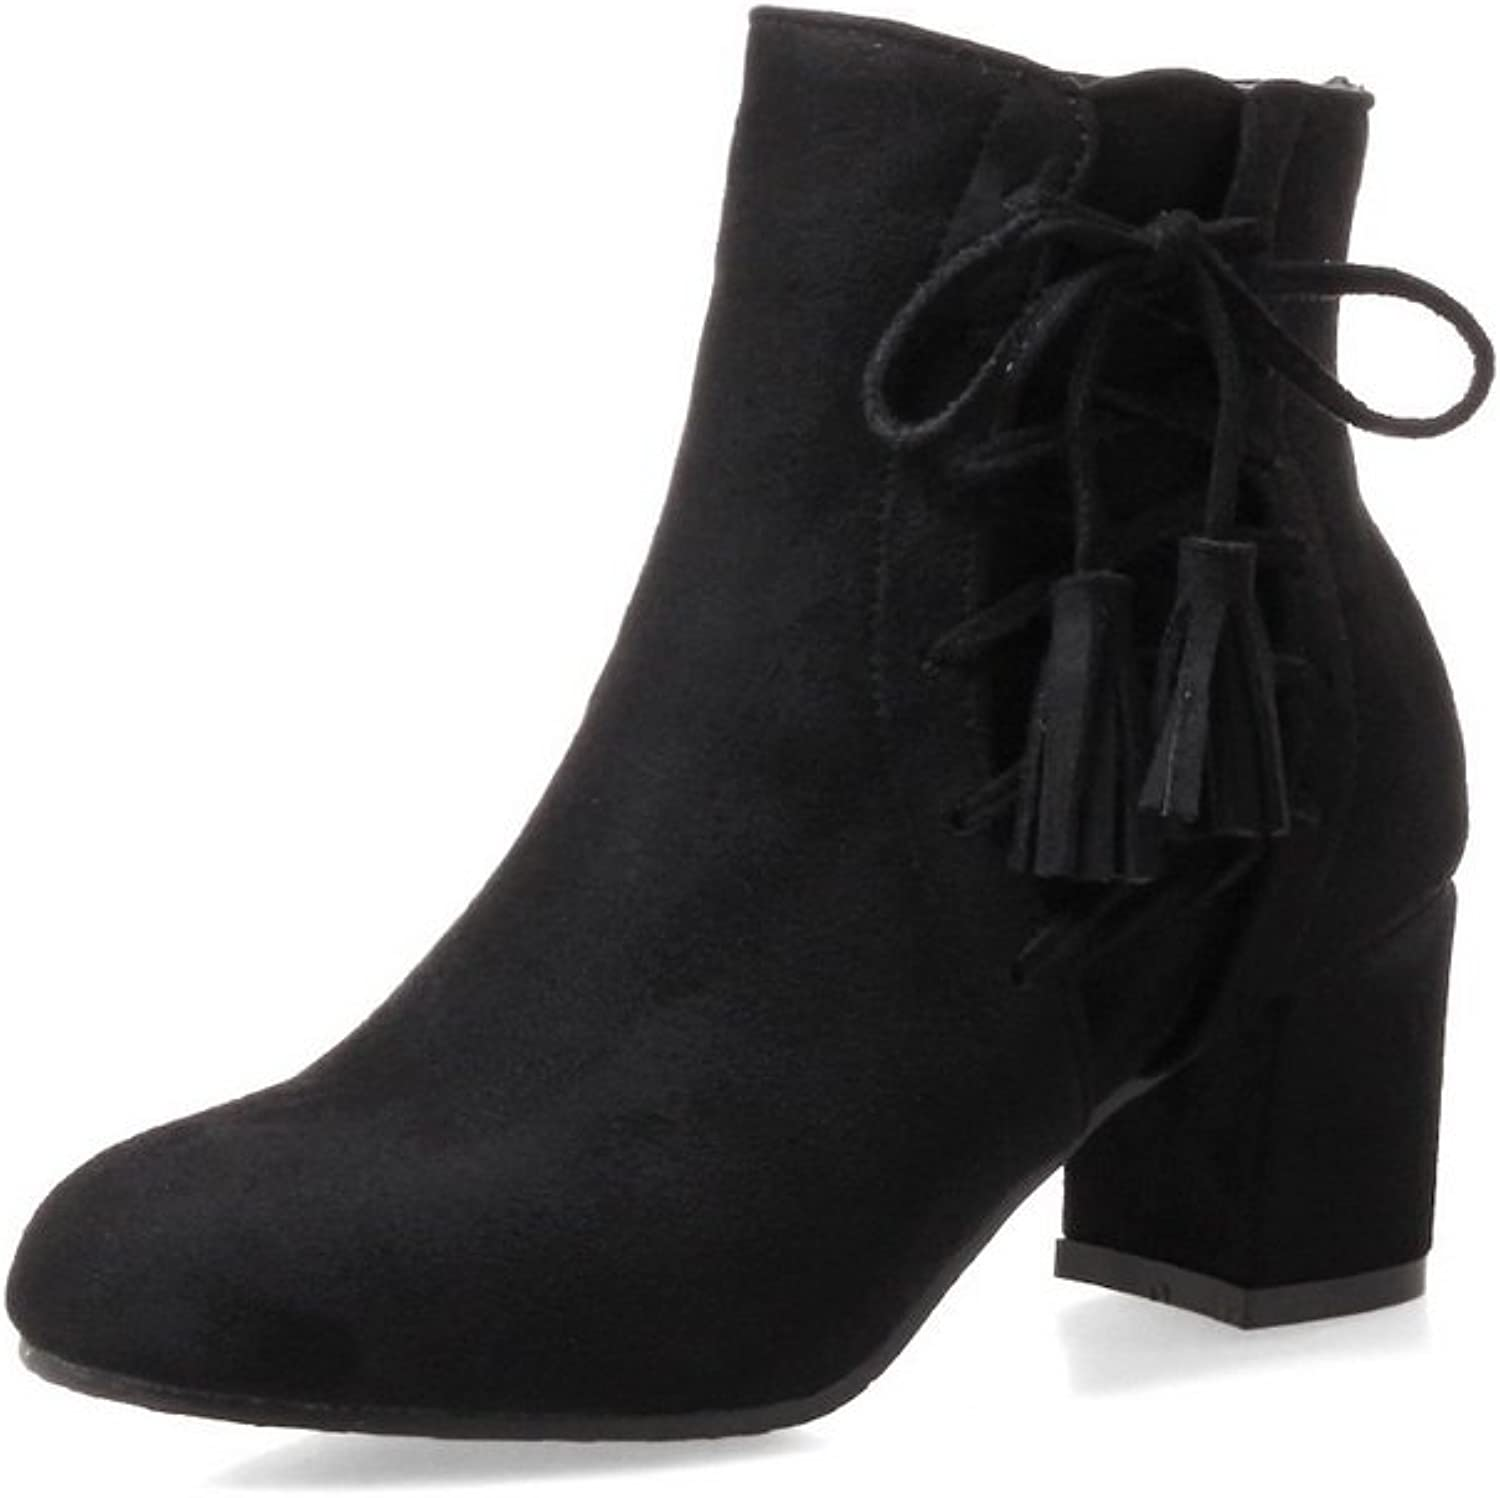 A&N Womens Boots Closed-Toe Elastic Adjustable-Strap Kitten-Heel Warm Lining Solid Not_Water_Resistant Charms Wedges Suede Boots DKU01687